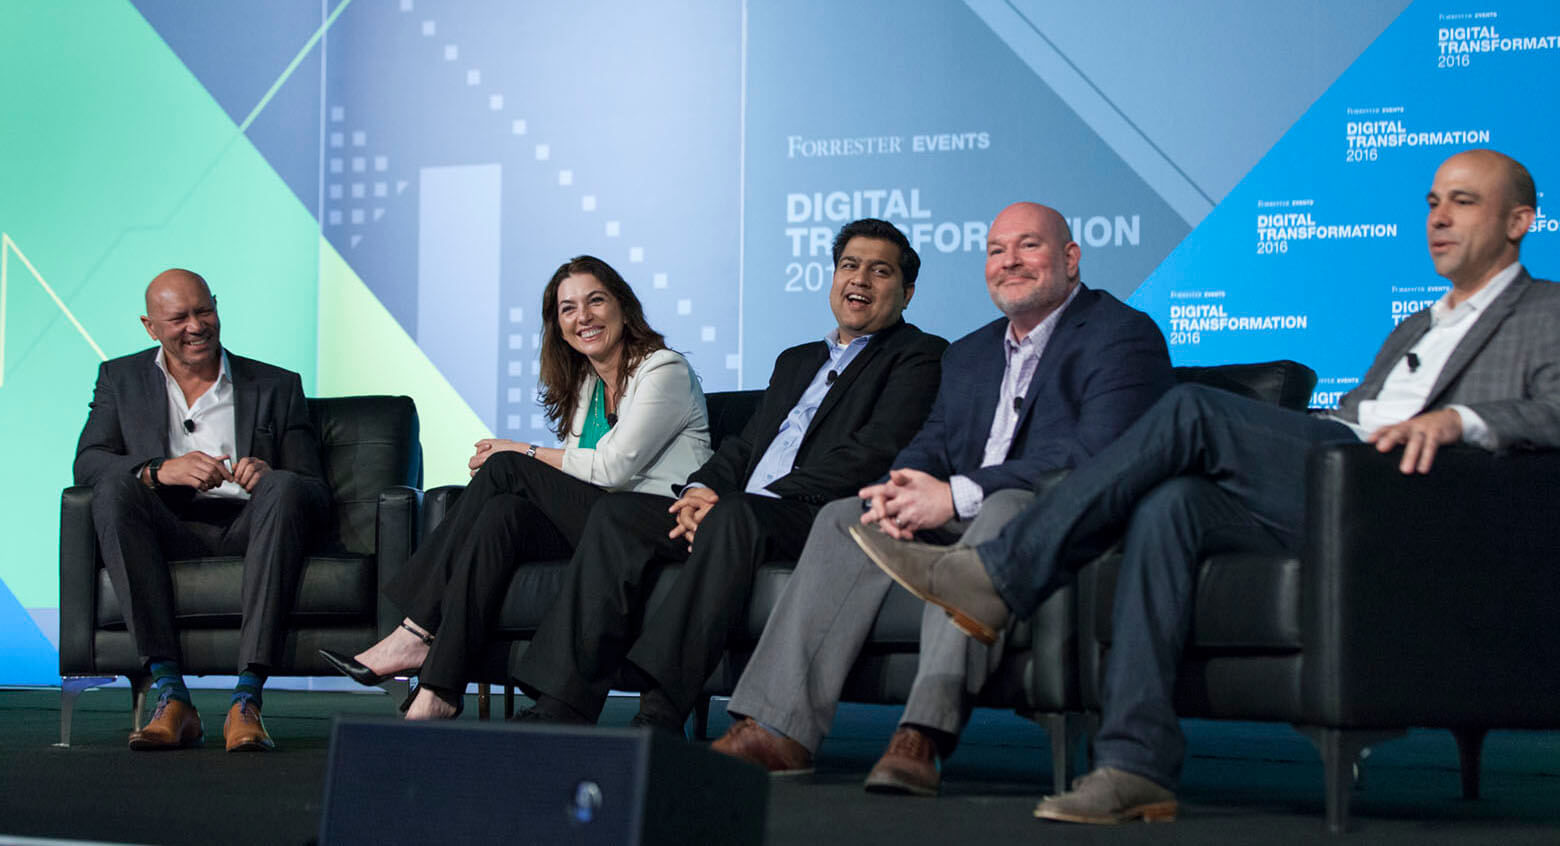 A Tale of Two Conferences, Part I: Forrester Digital Transformation Fizzles